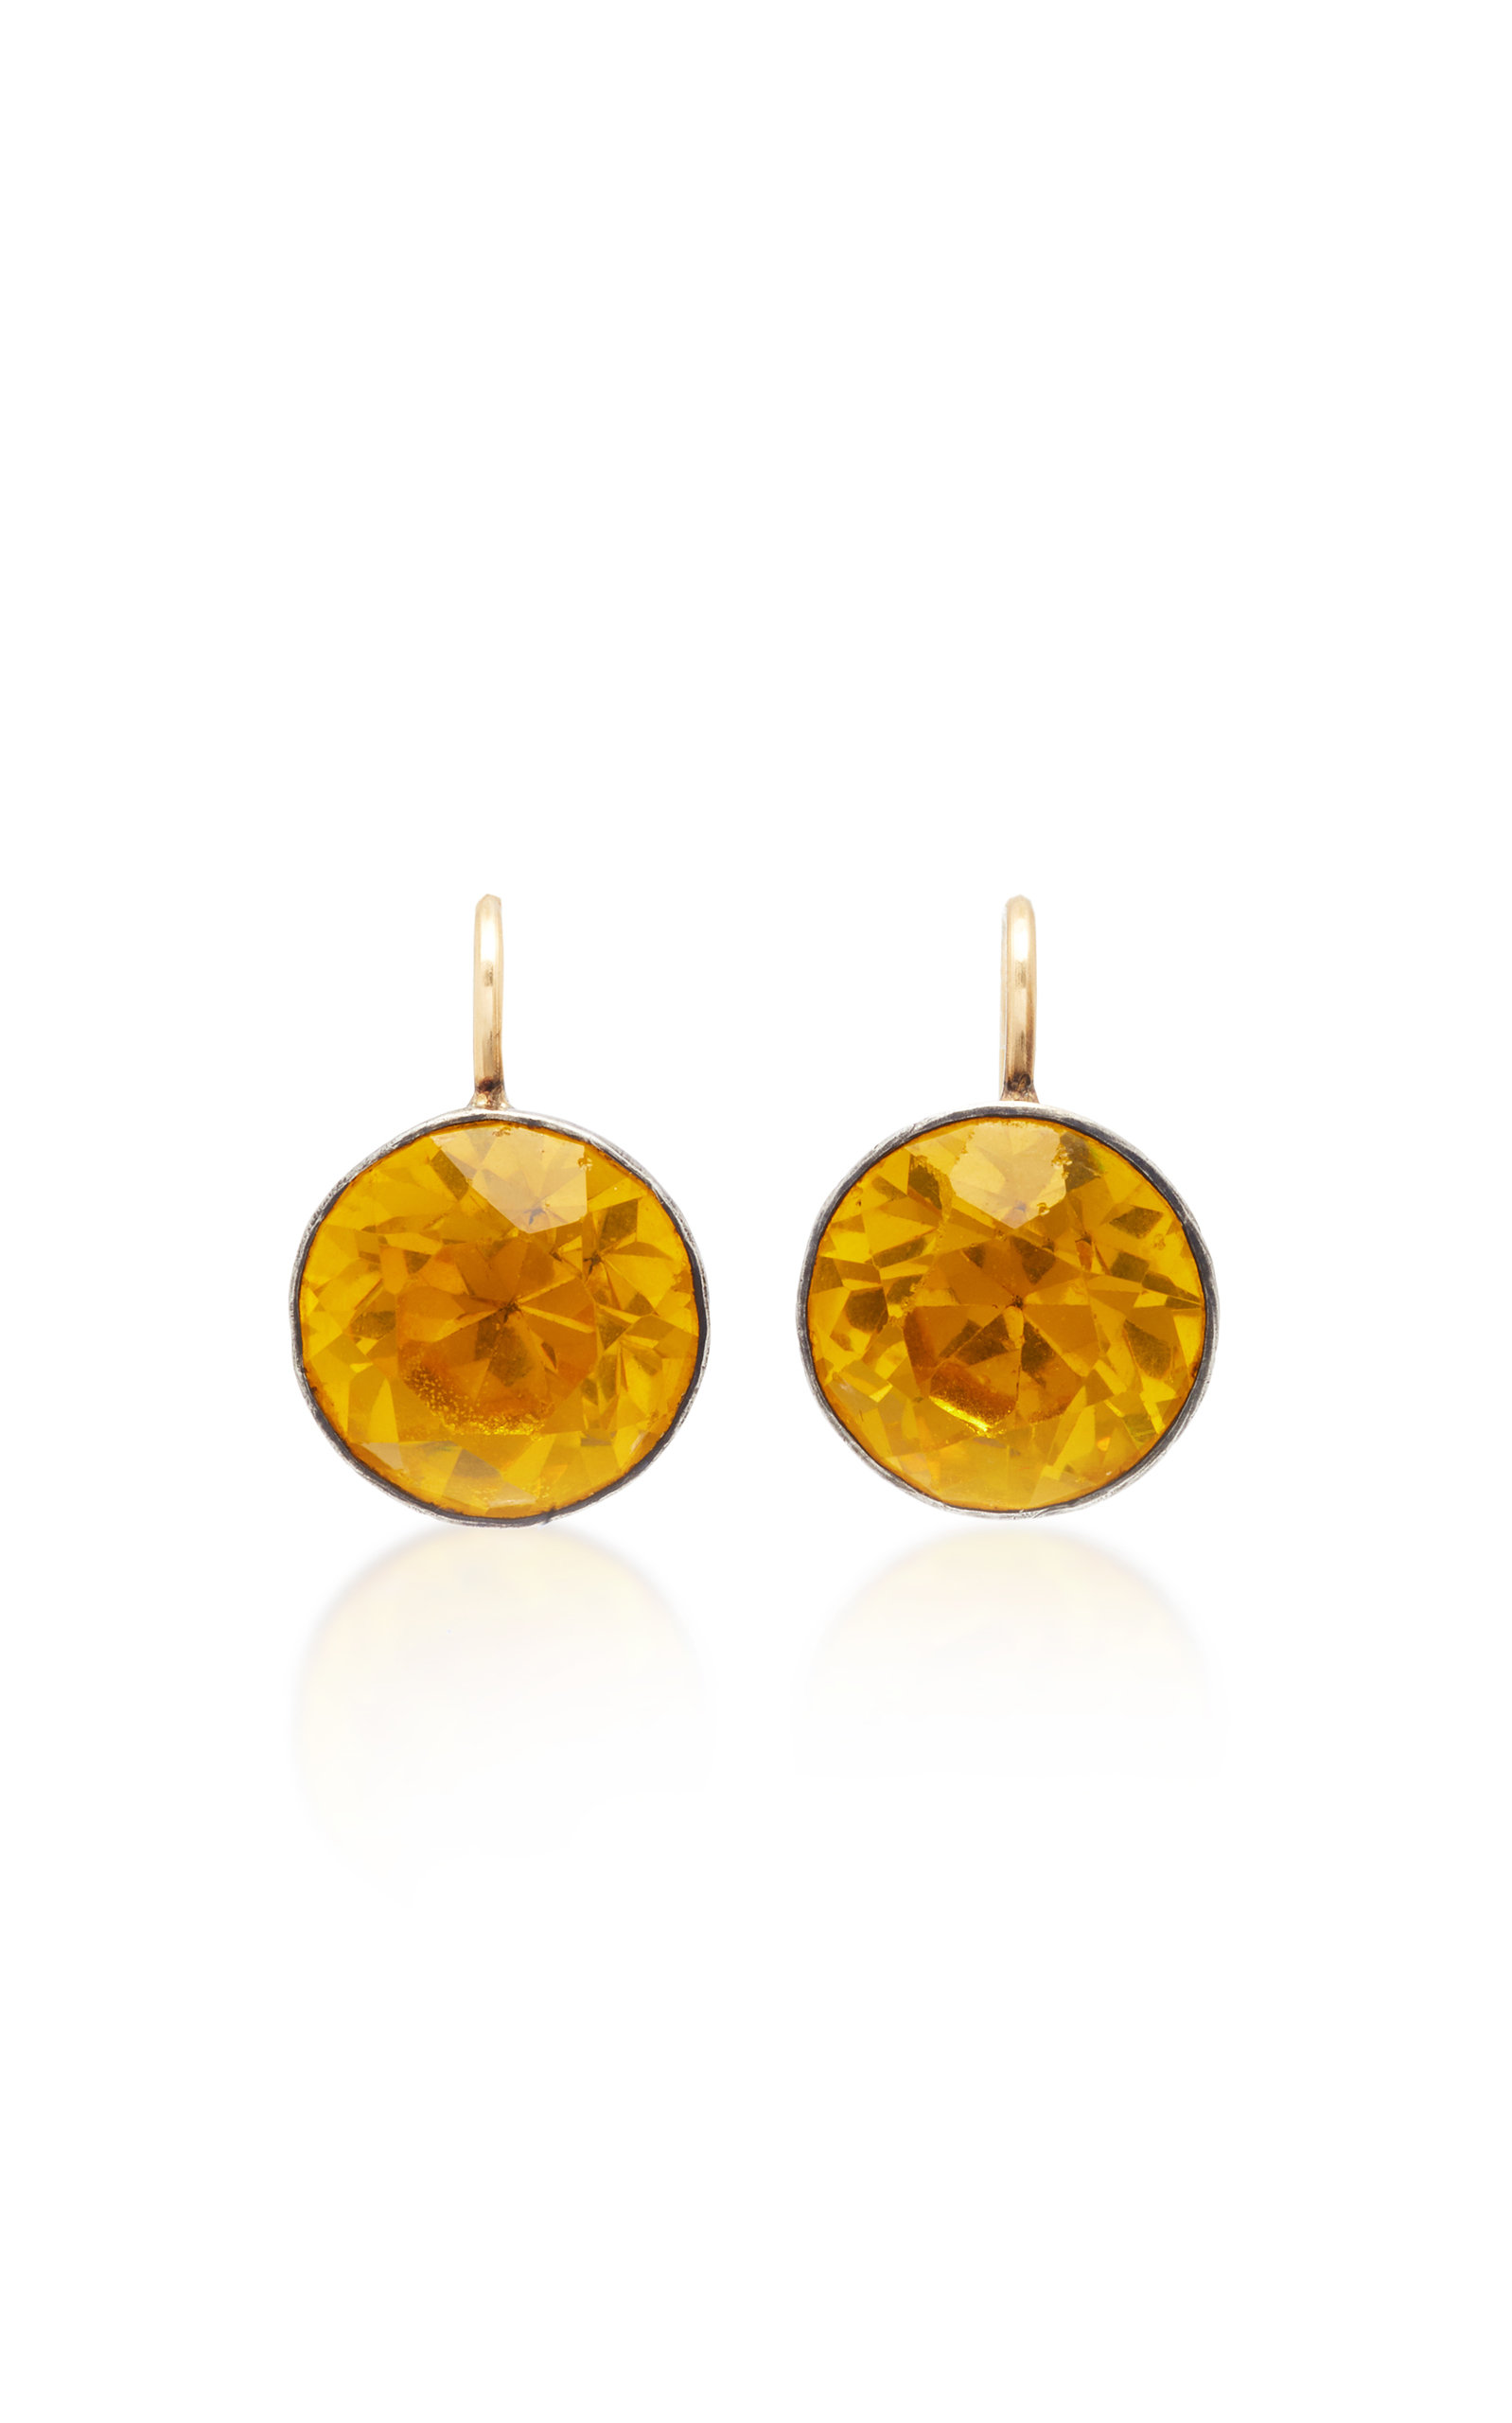 VELA ONE-OF-A-KIND GEORGIAN YELLOW PASTE EARRINGS